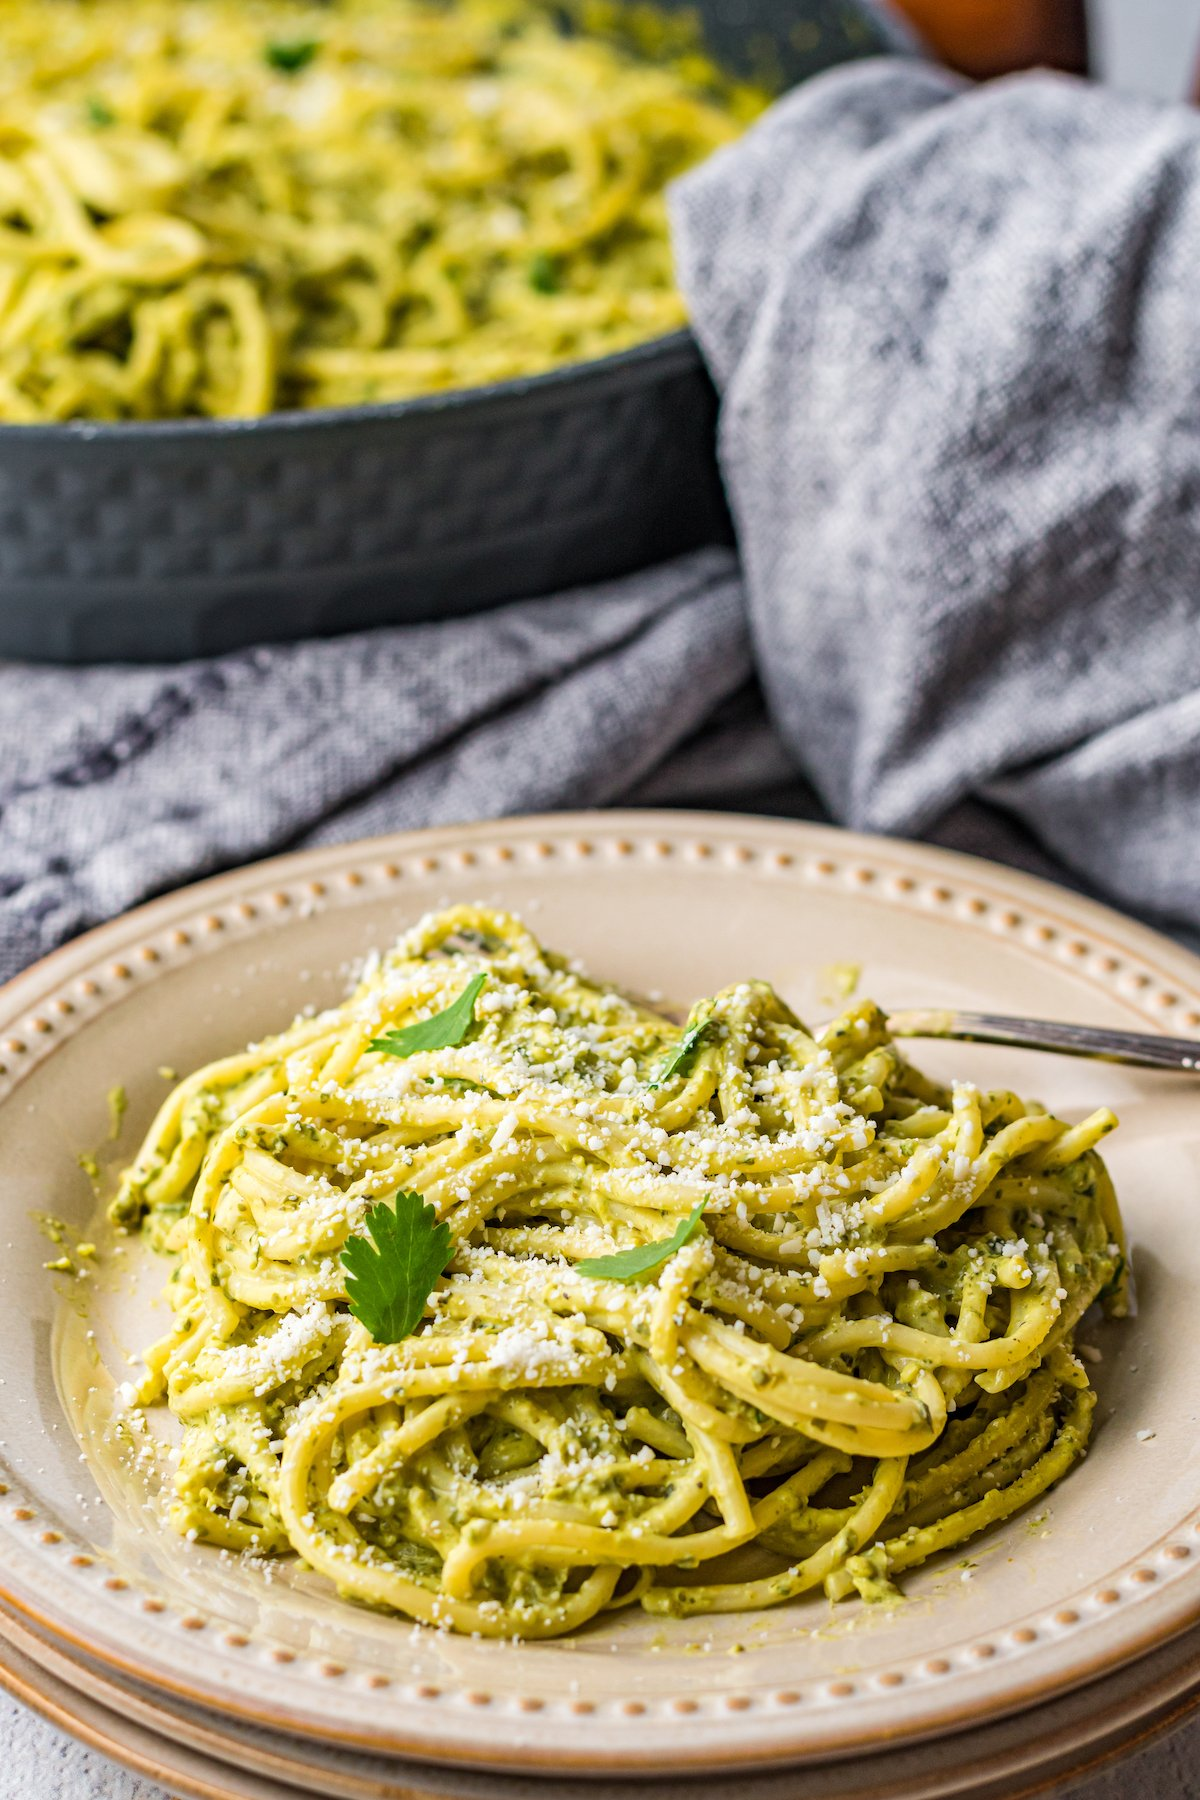 A dinner plate of green Mexican spaghetti sits in front of a pan filled with it as well